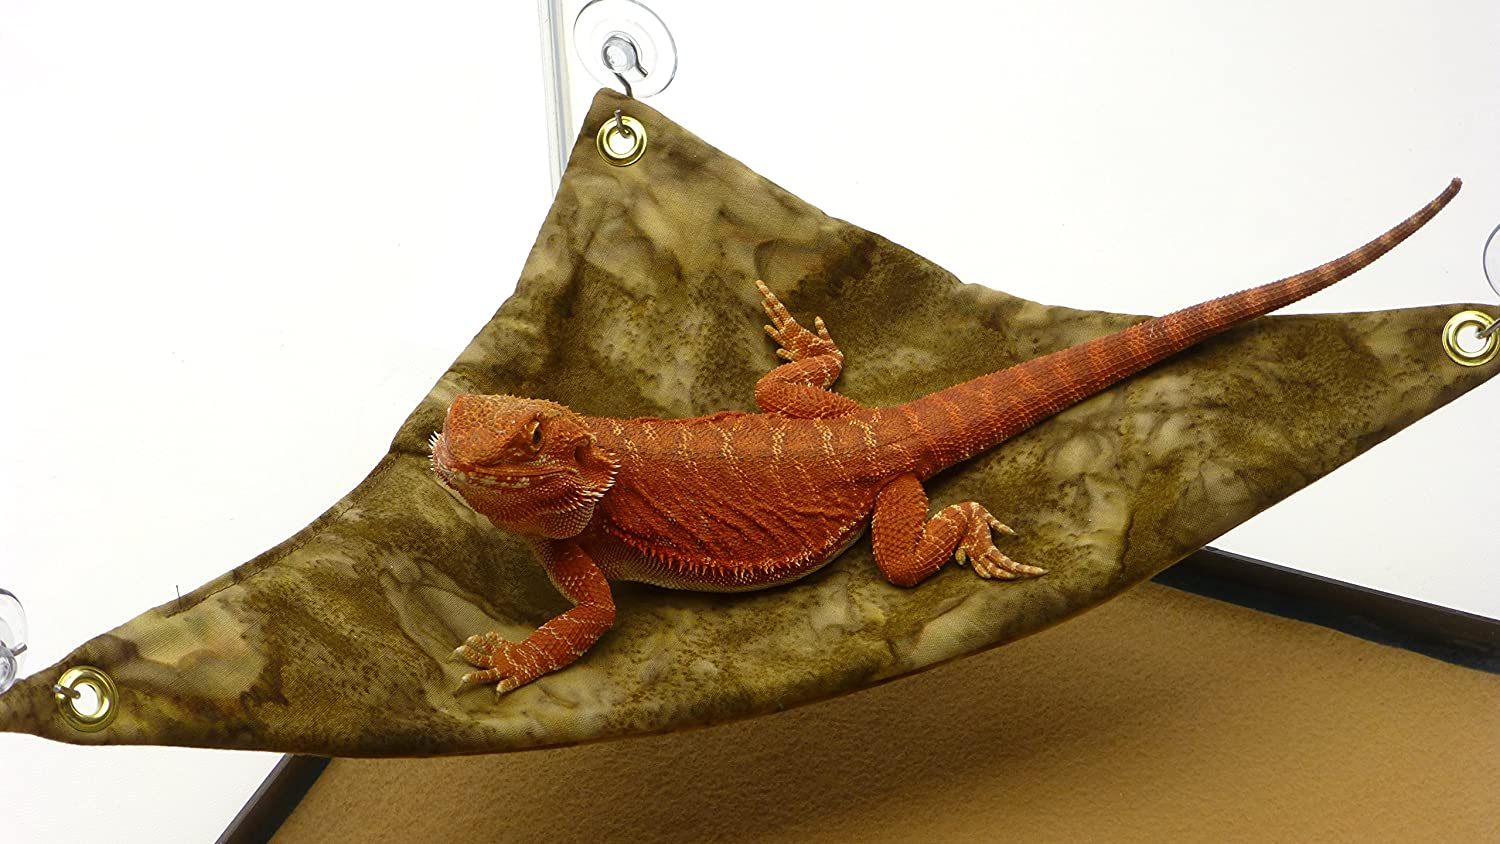 Leopard Geckos Small Hammock for Baby Bearded Dragons Sugar Gliders Or Other Small Animals SH33